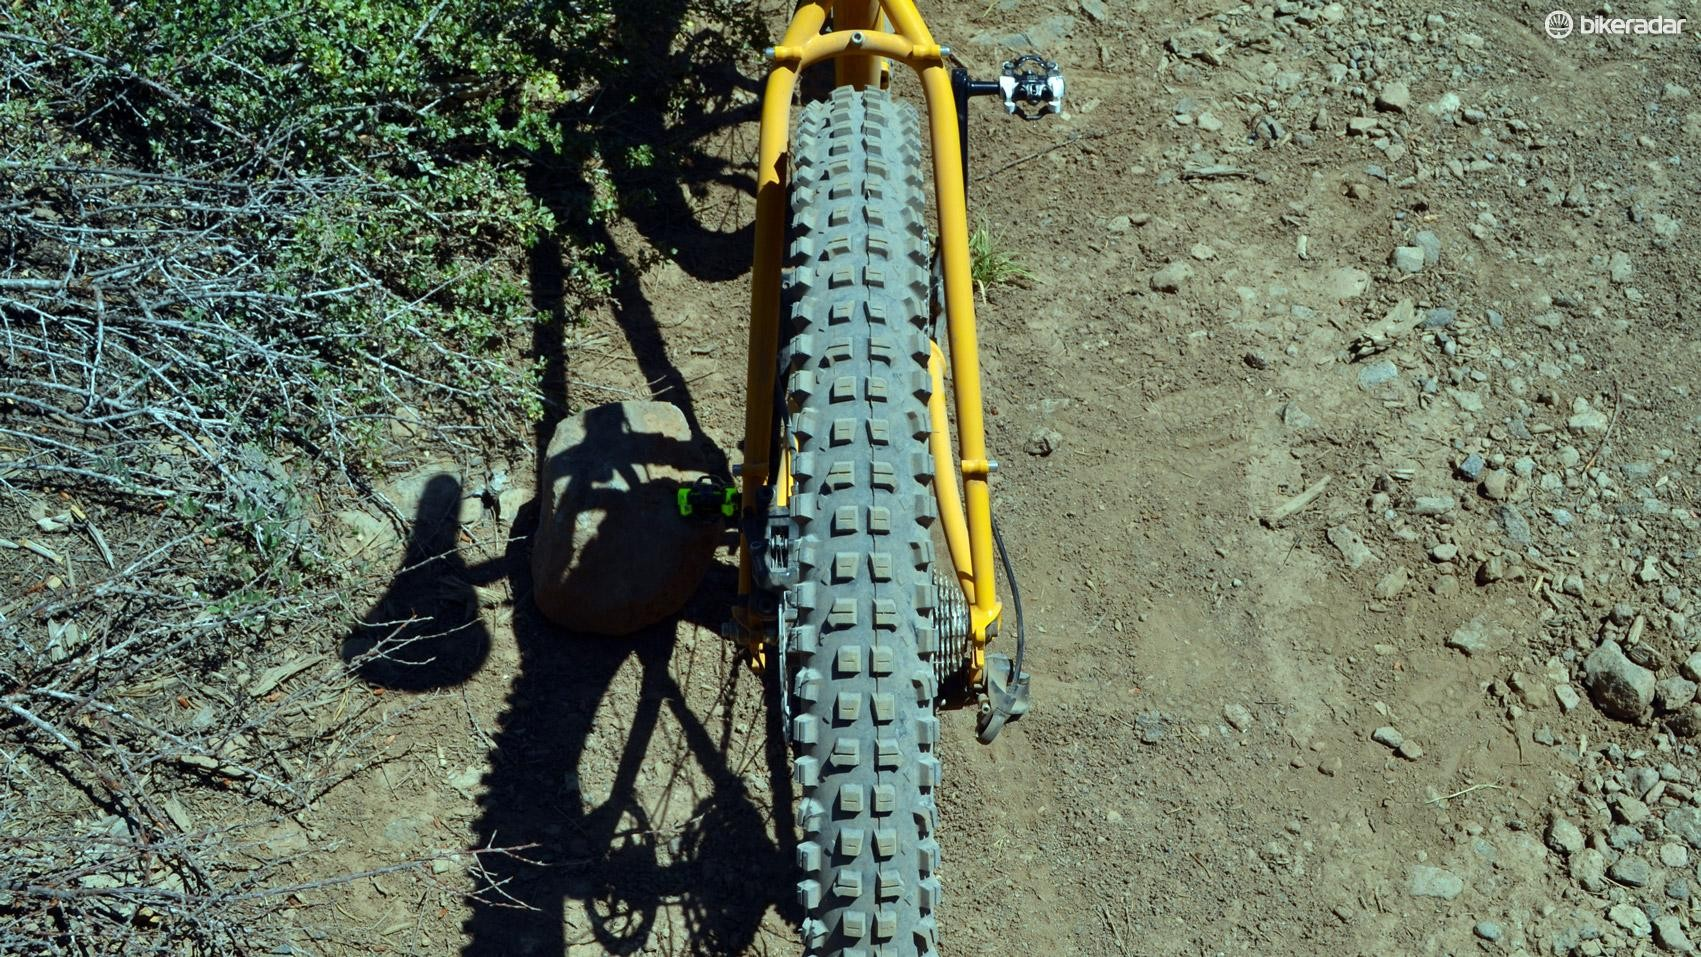 Big knobbies, a proper sidewall and soft rubber should create huge plus-size traction